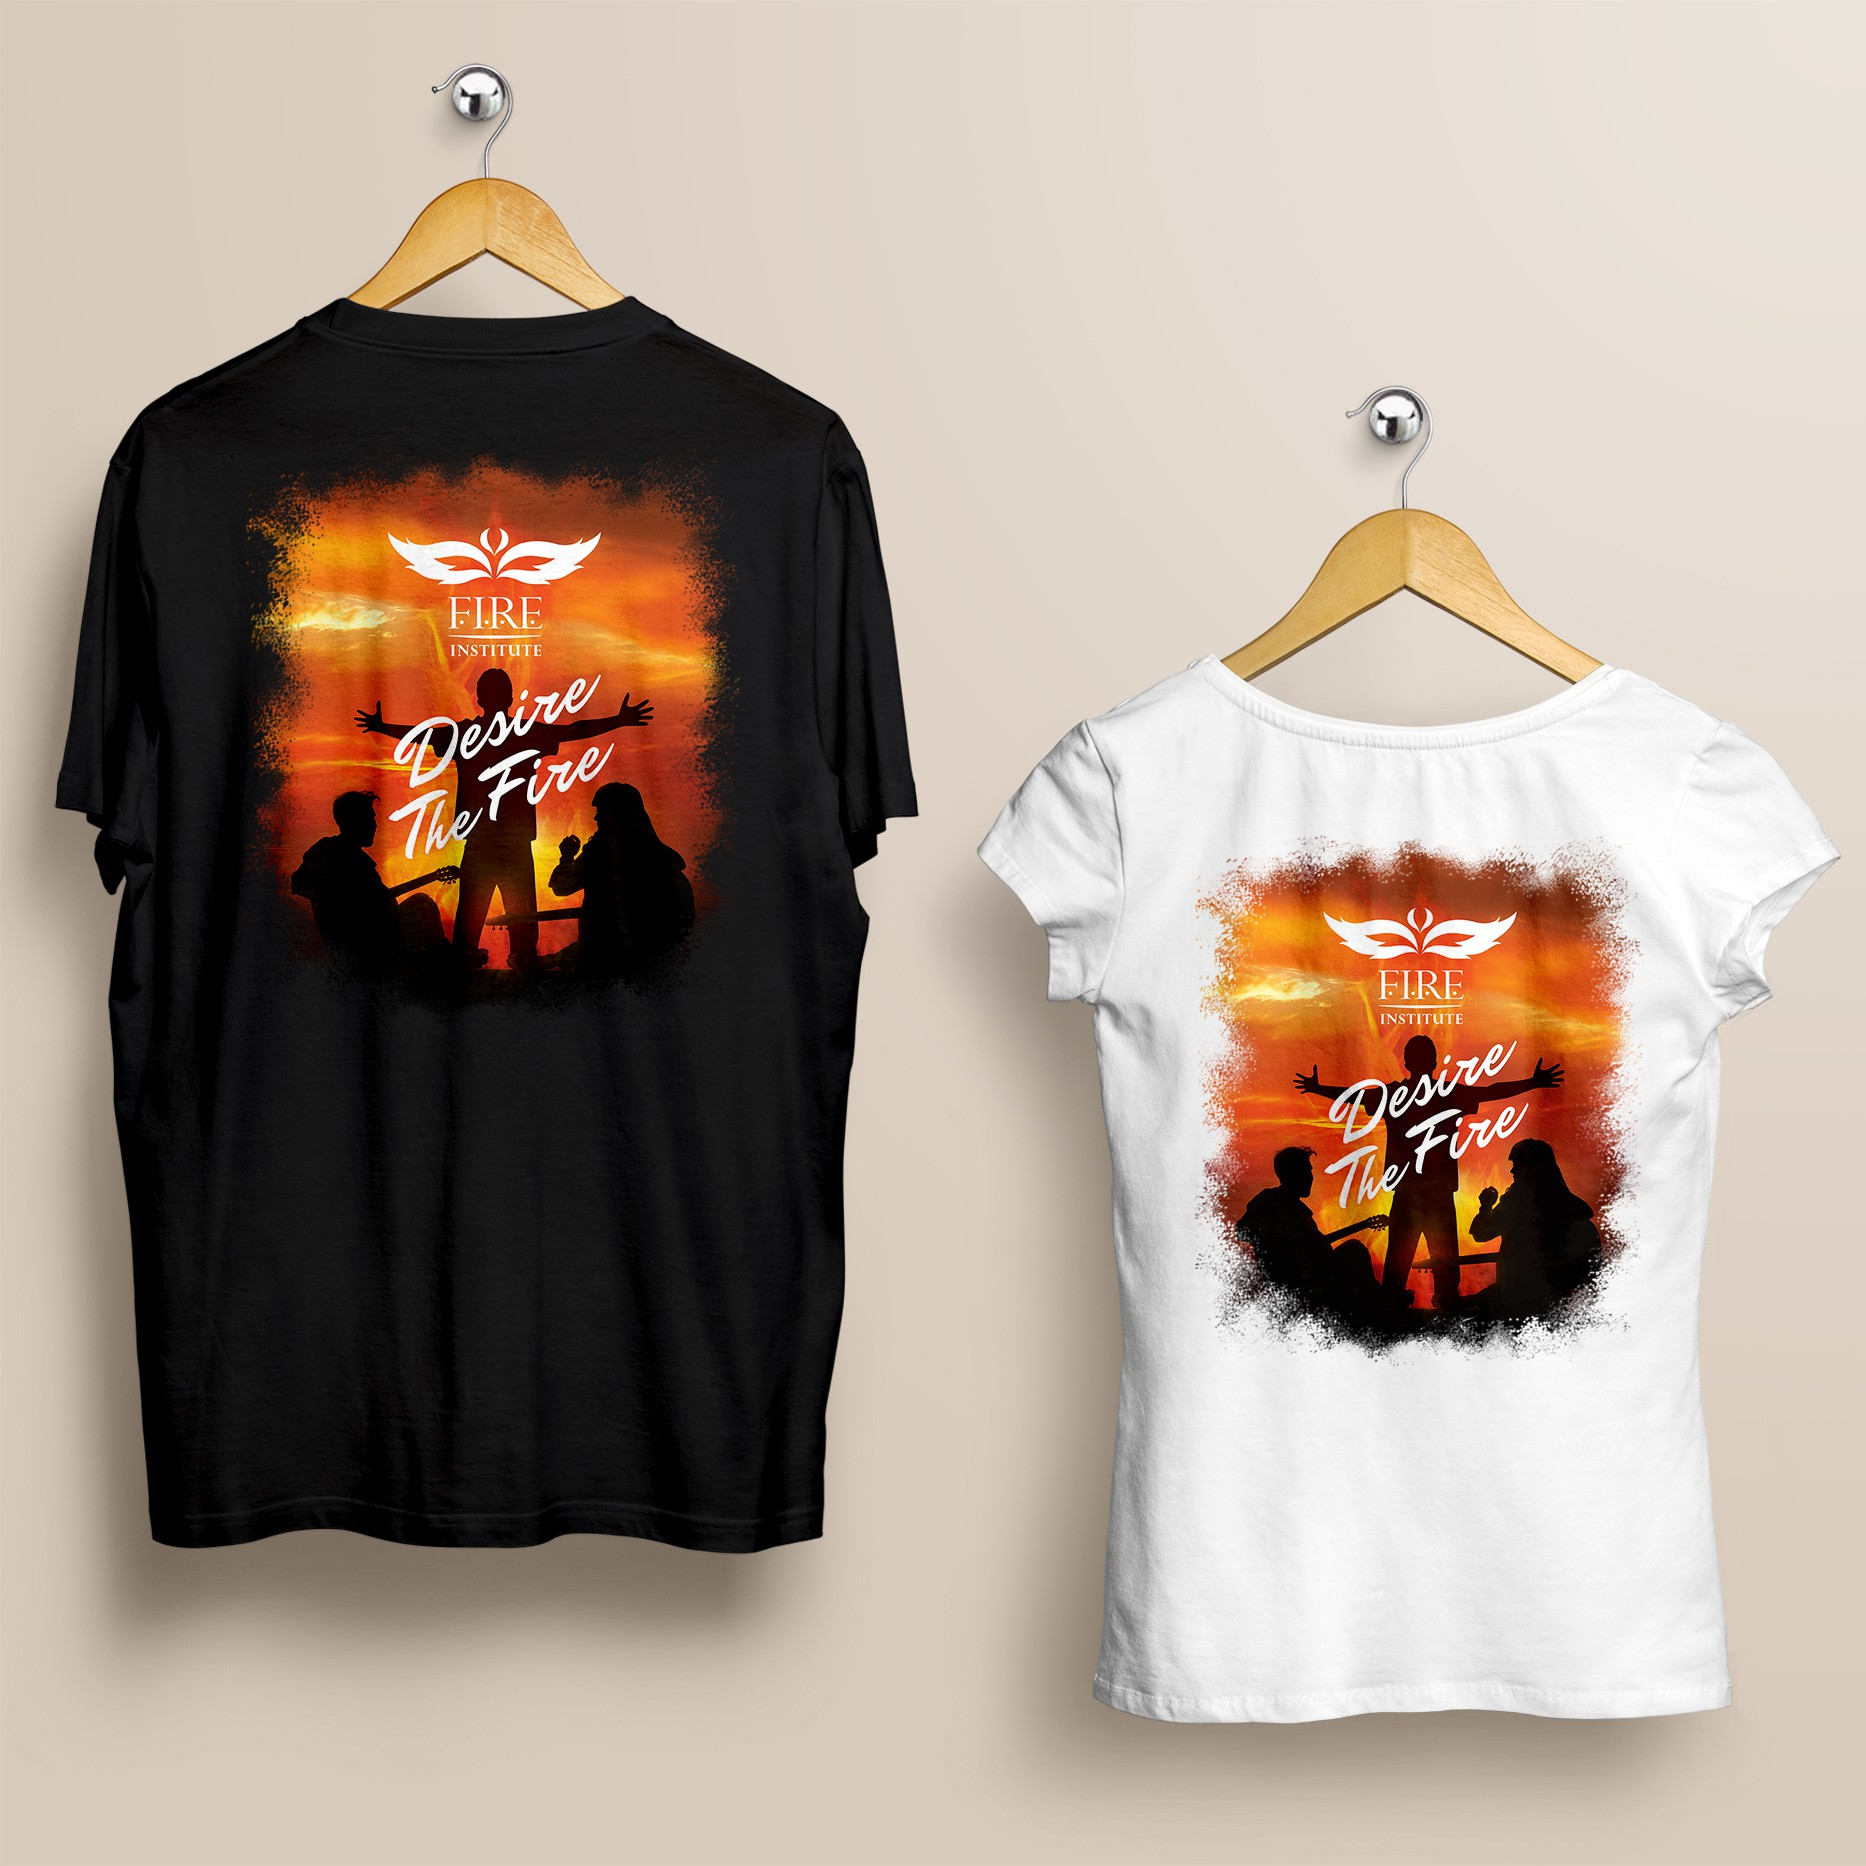 FIRE Institute Shirt